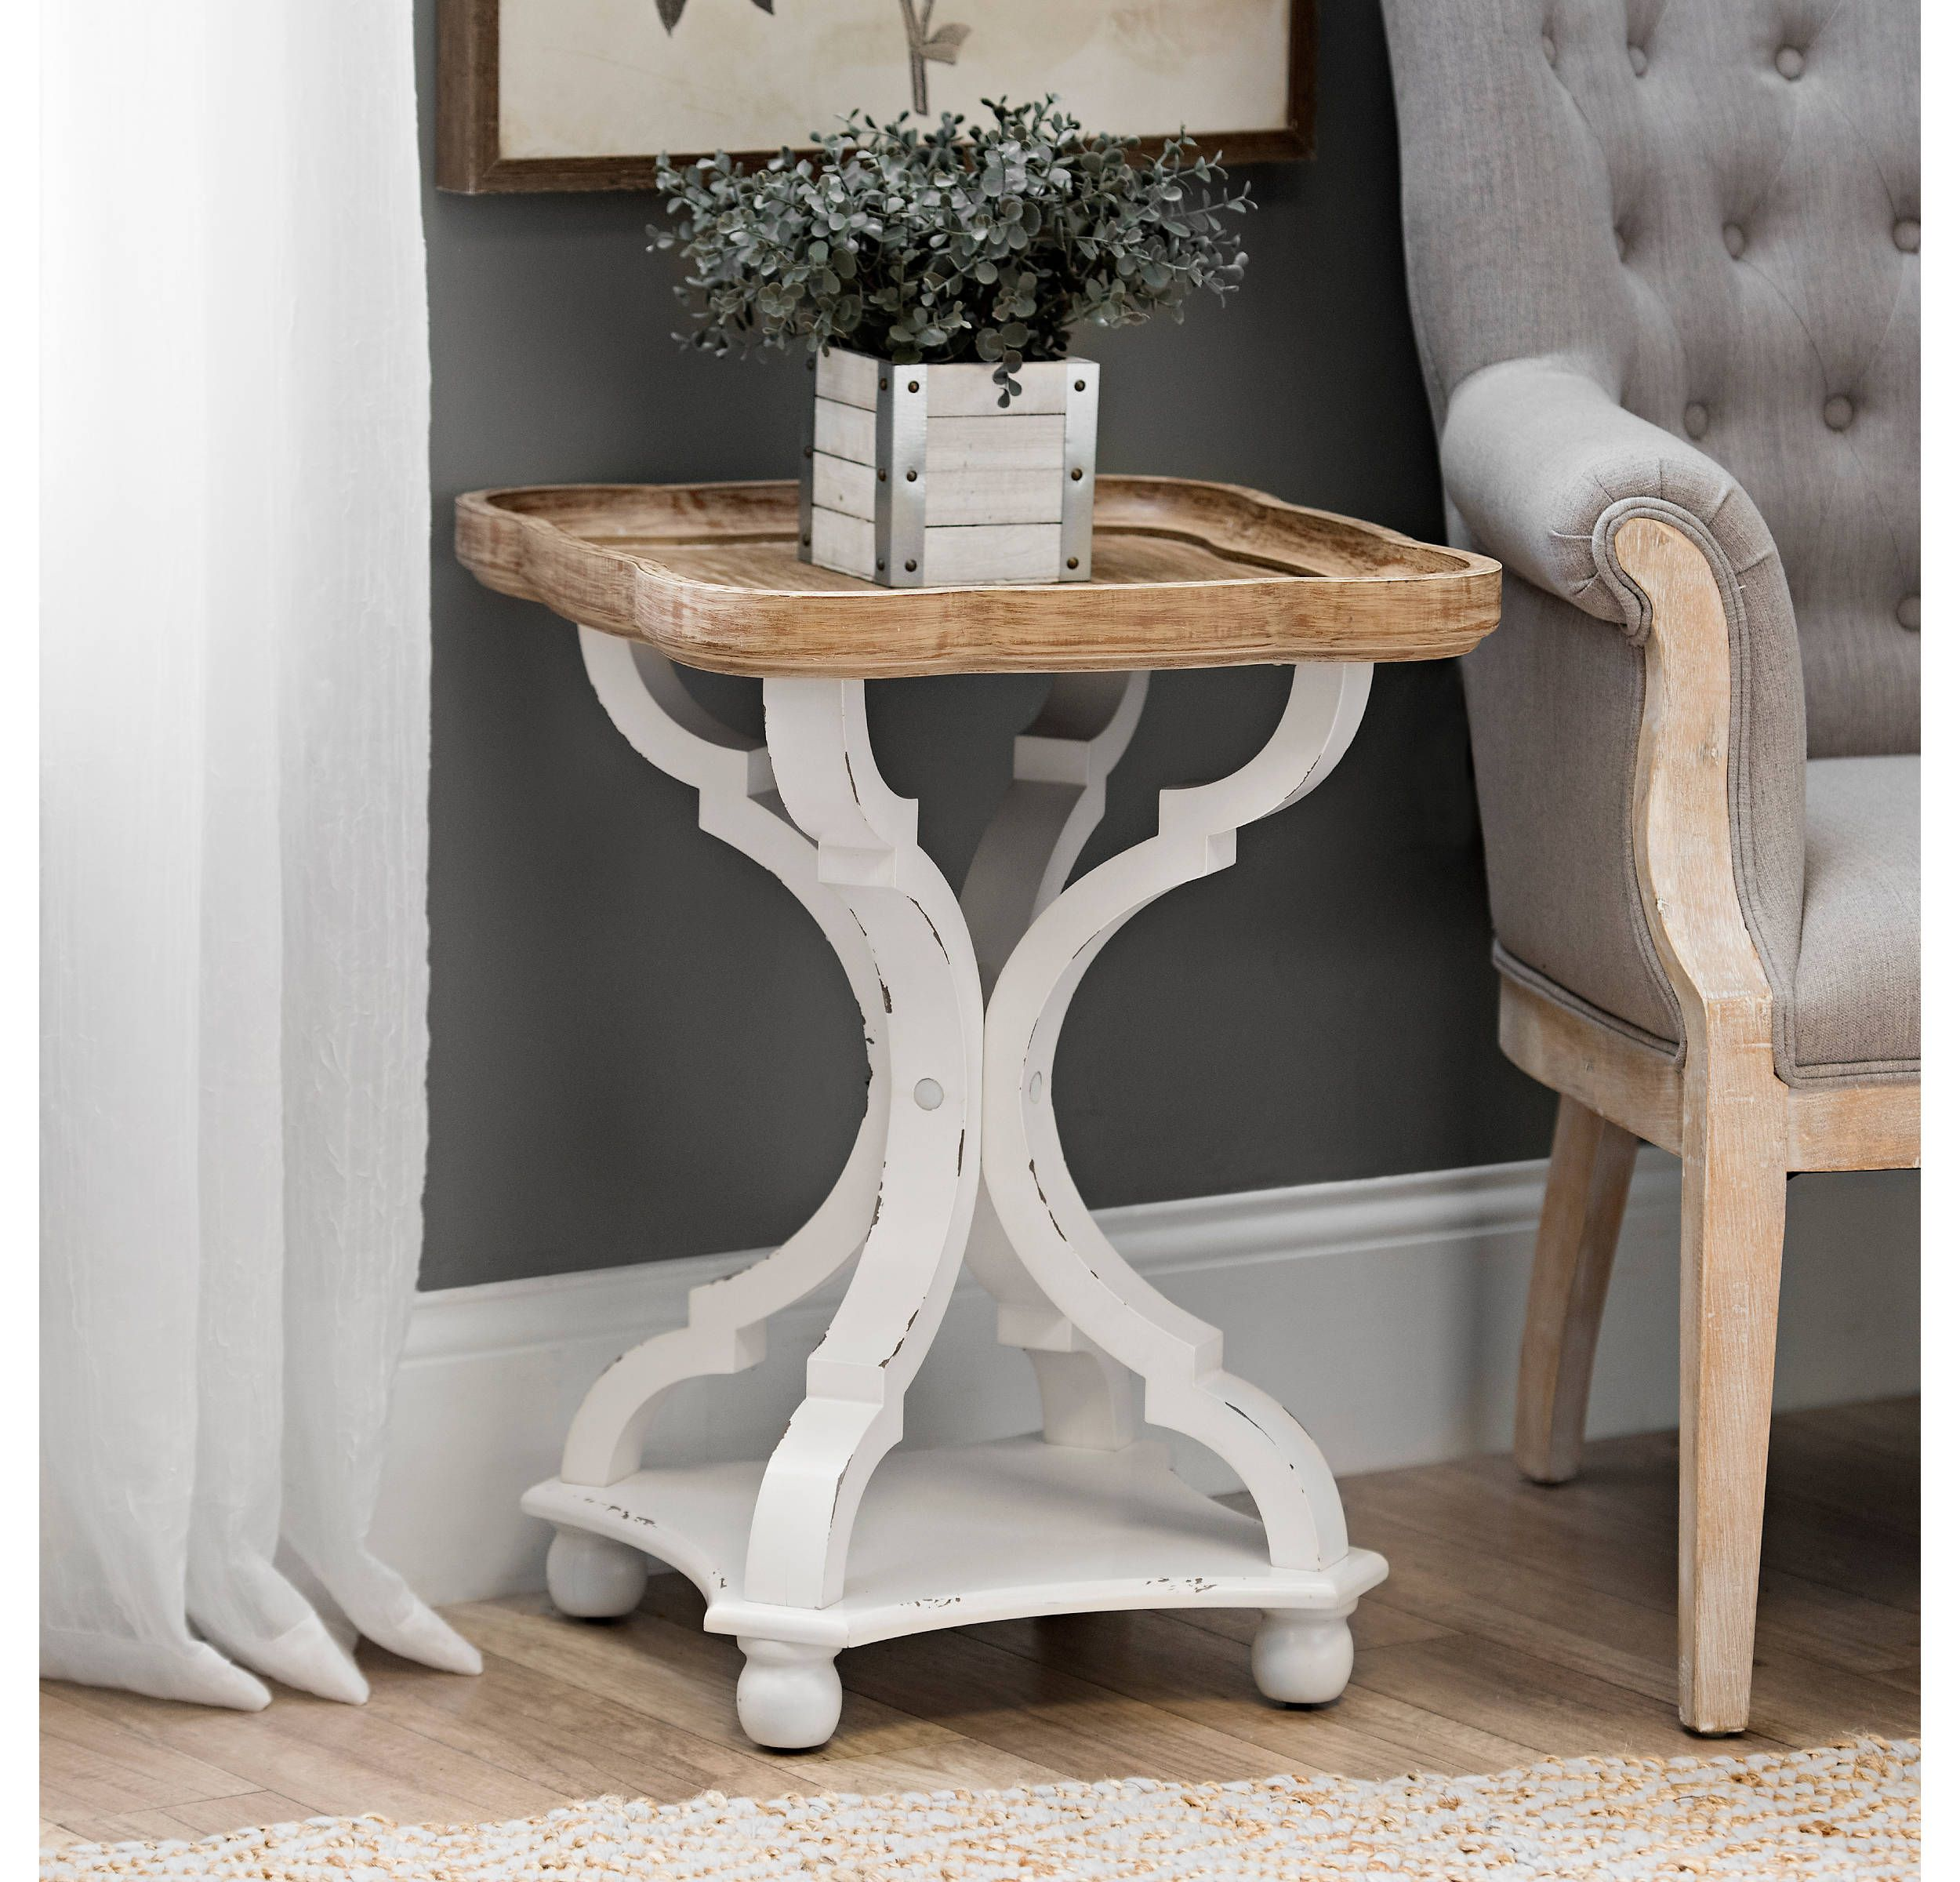 Cozayh Rustic Farmhouse Cottagecore Accent End Table Natural Tray Top Side Table Nightstand For Family Dinning Or Living Room Small Spaces Handcrafted Finis Side Table Wood Farmhouse Side Table Farmhouse End